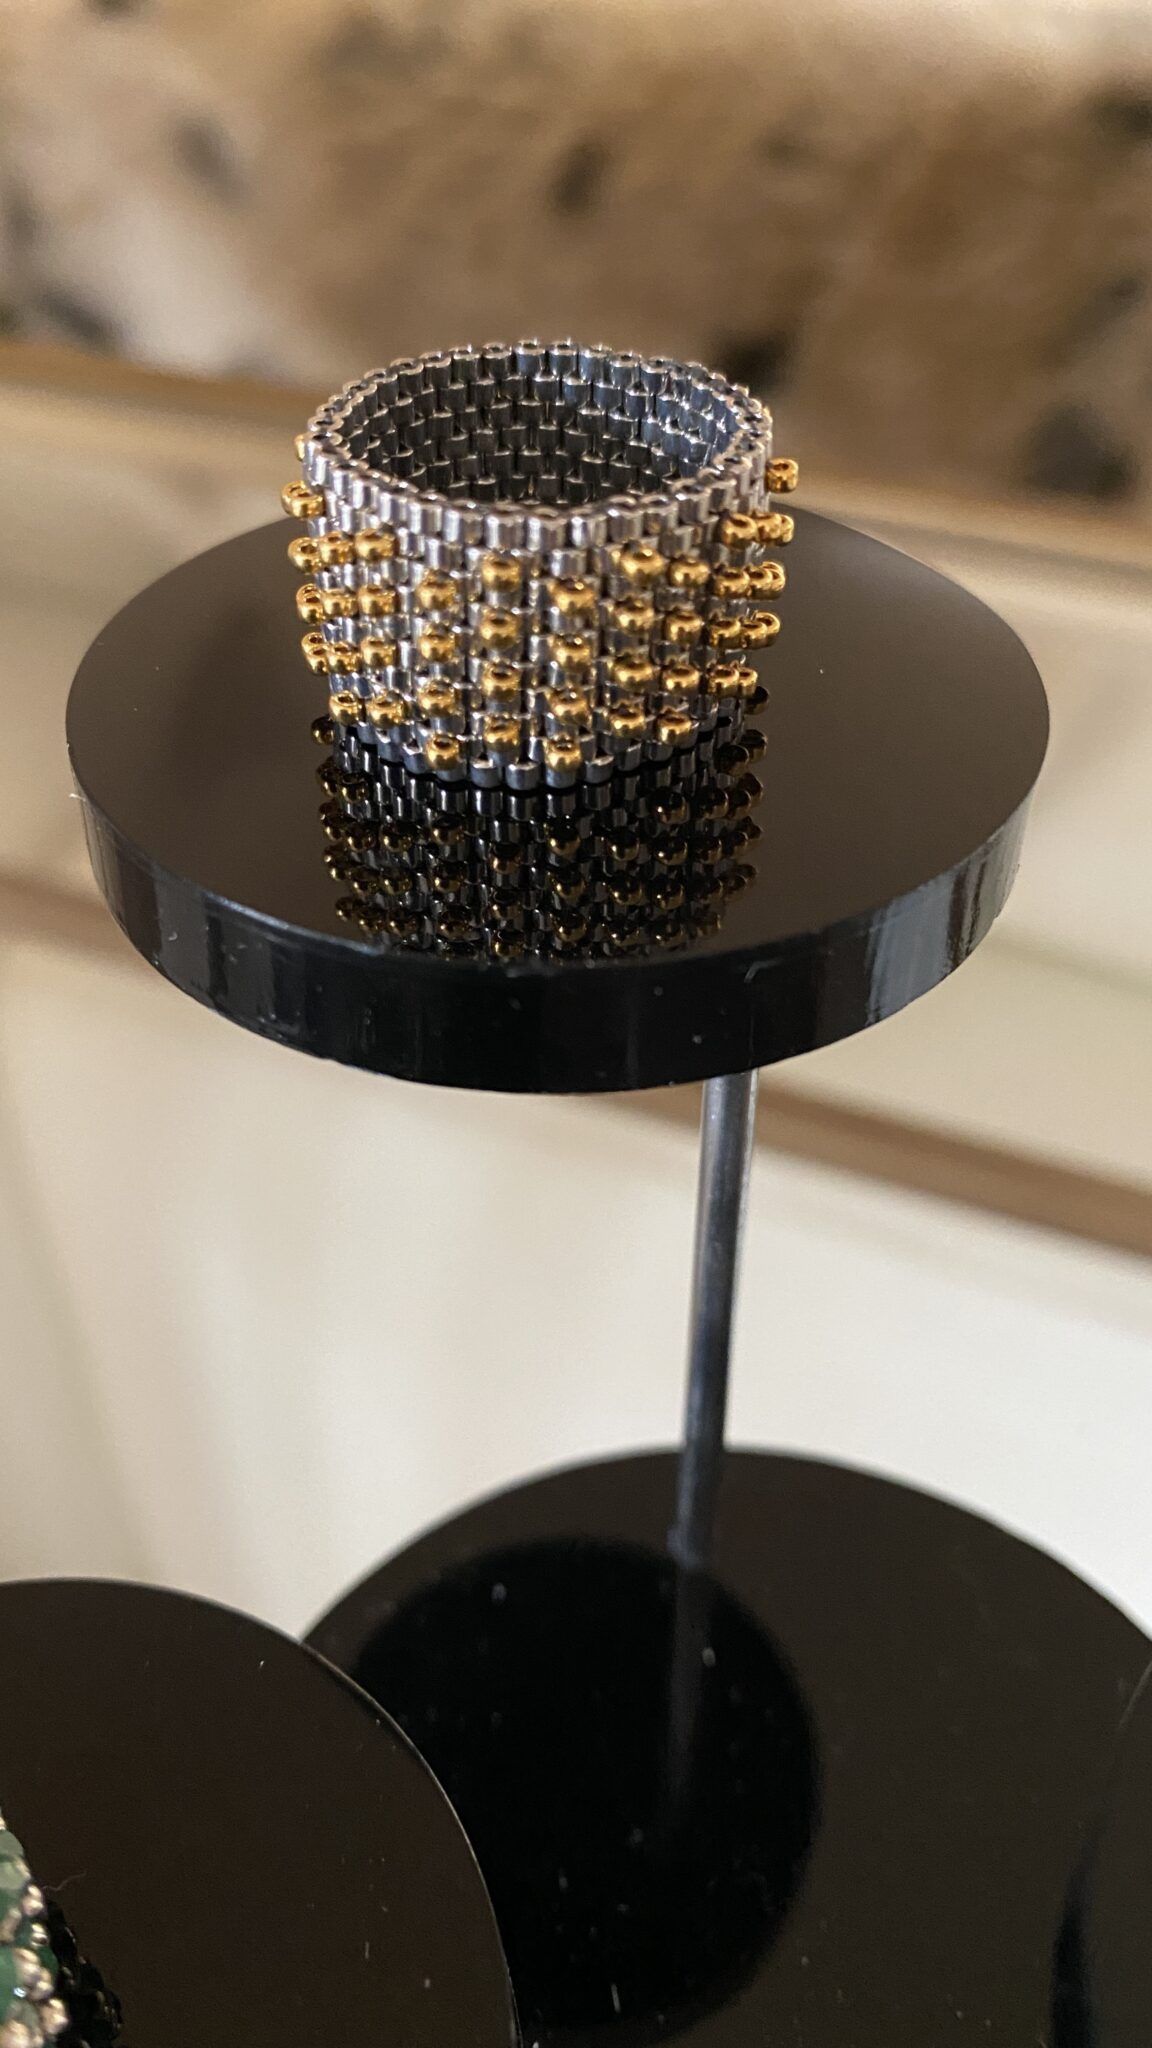 24k Gold Plated And Palladium Seed Bead Ring By Covet And Desire